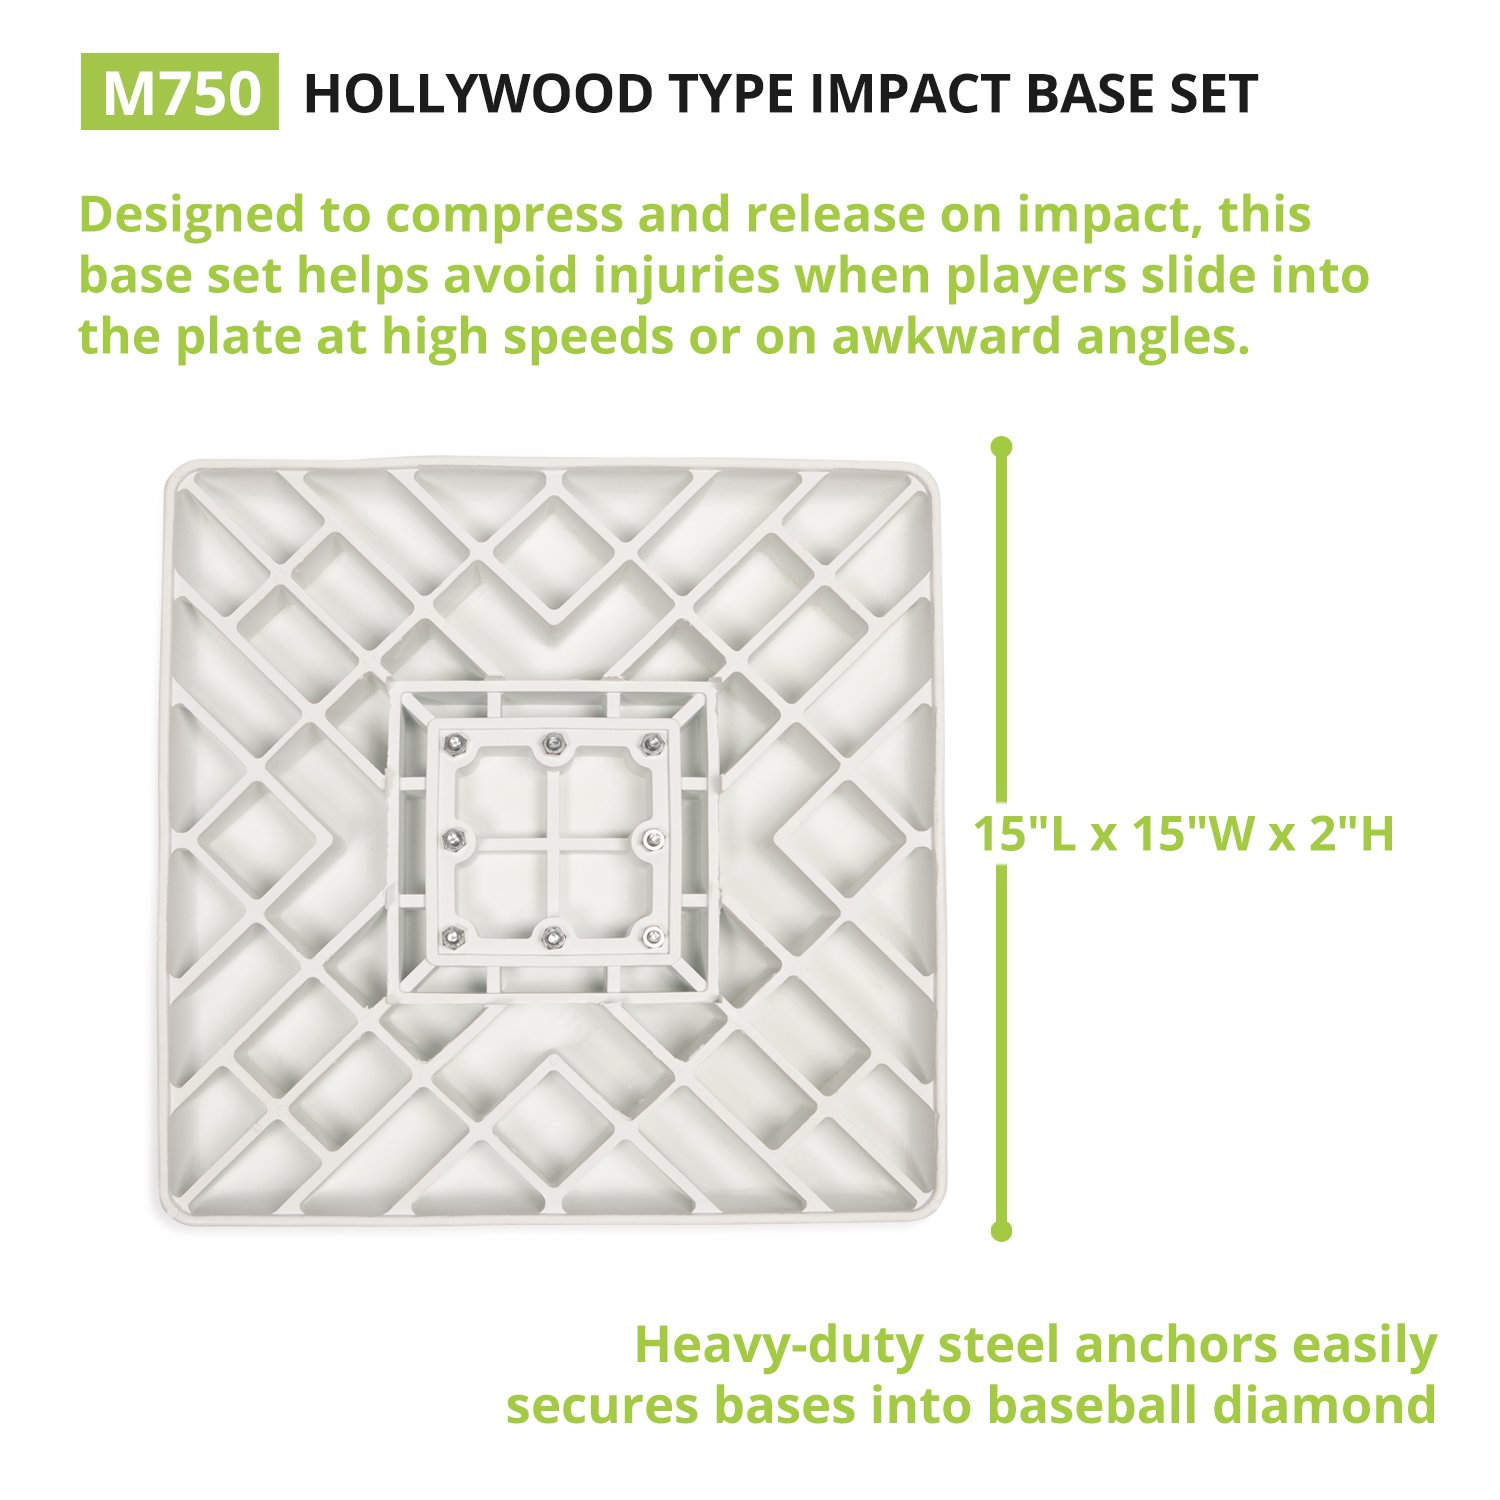 Champion Sports Impact Baseball Bases: Hollywood Type Safety Collapsible Bases with Anchor Plug - Sports Equipment Bags for Youth Baseball & Softball by Champion Sports (Image #3)